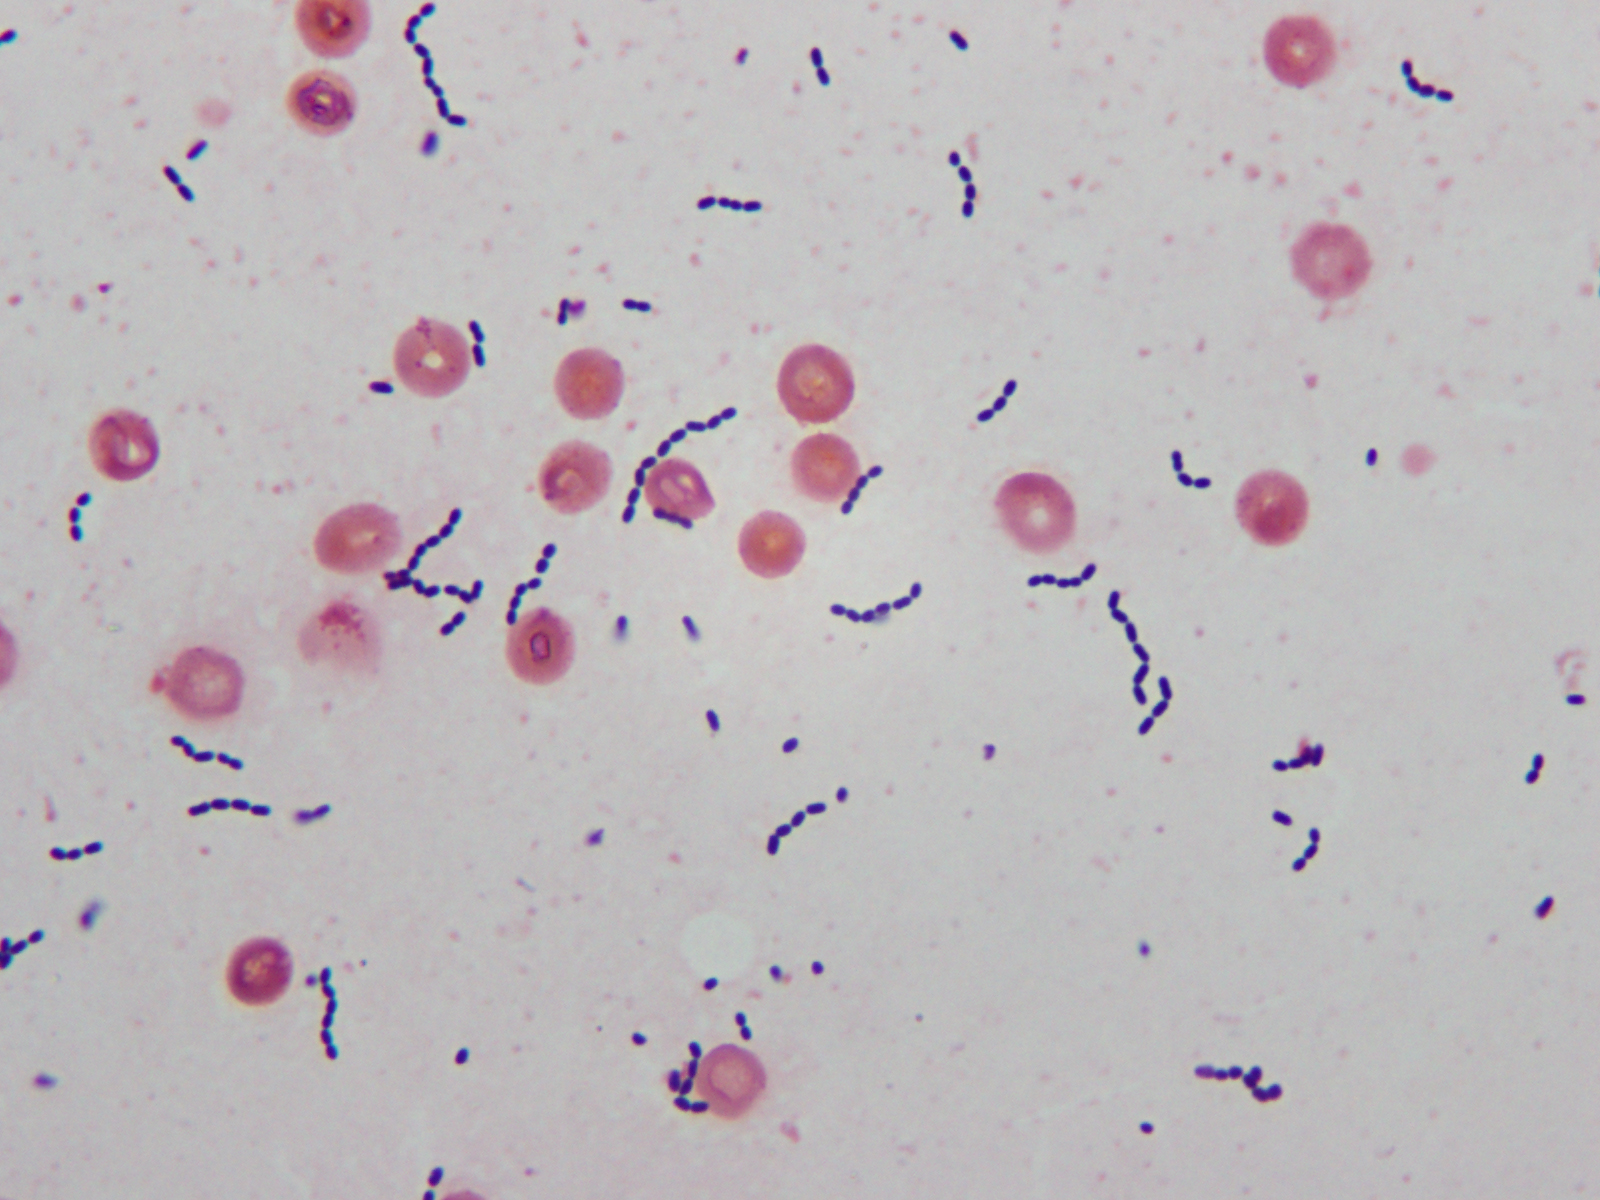 microbiology gram positive cocci Gram positive cocci gram positive cocci - image gpc in clusters gpc in  chains hover over the circles to see a more detailed view click the circle that  best.